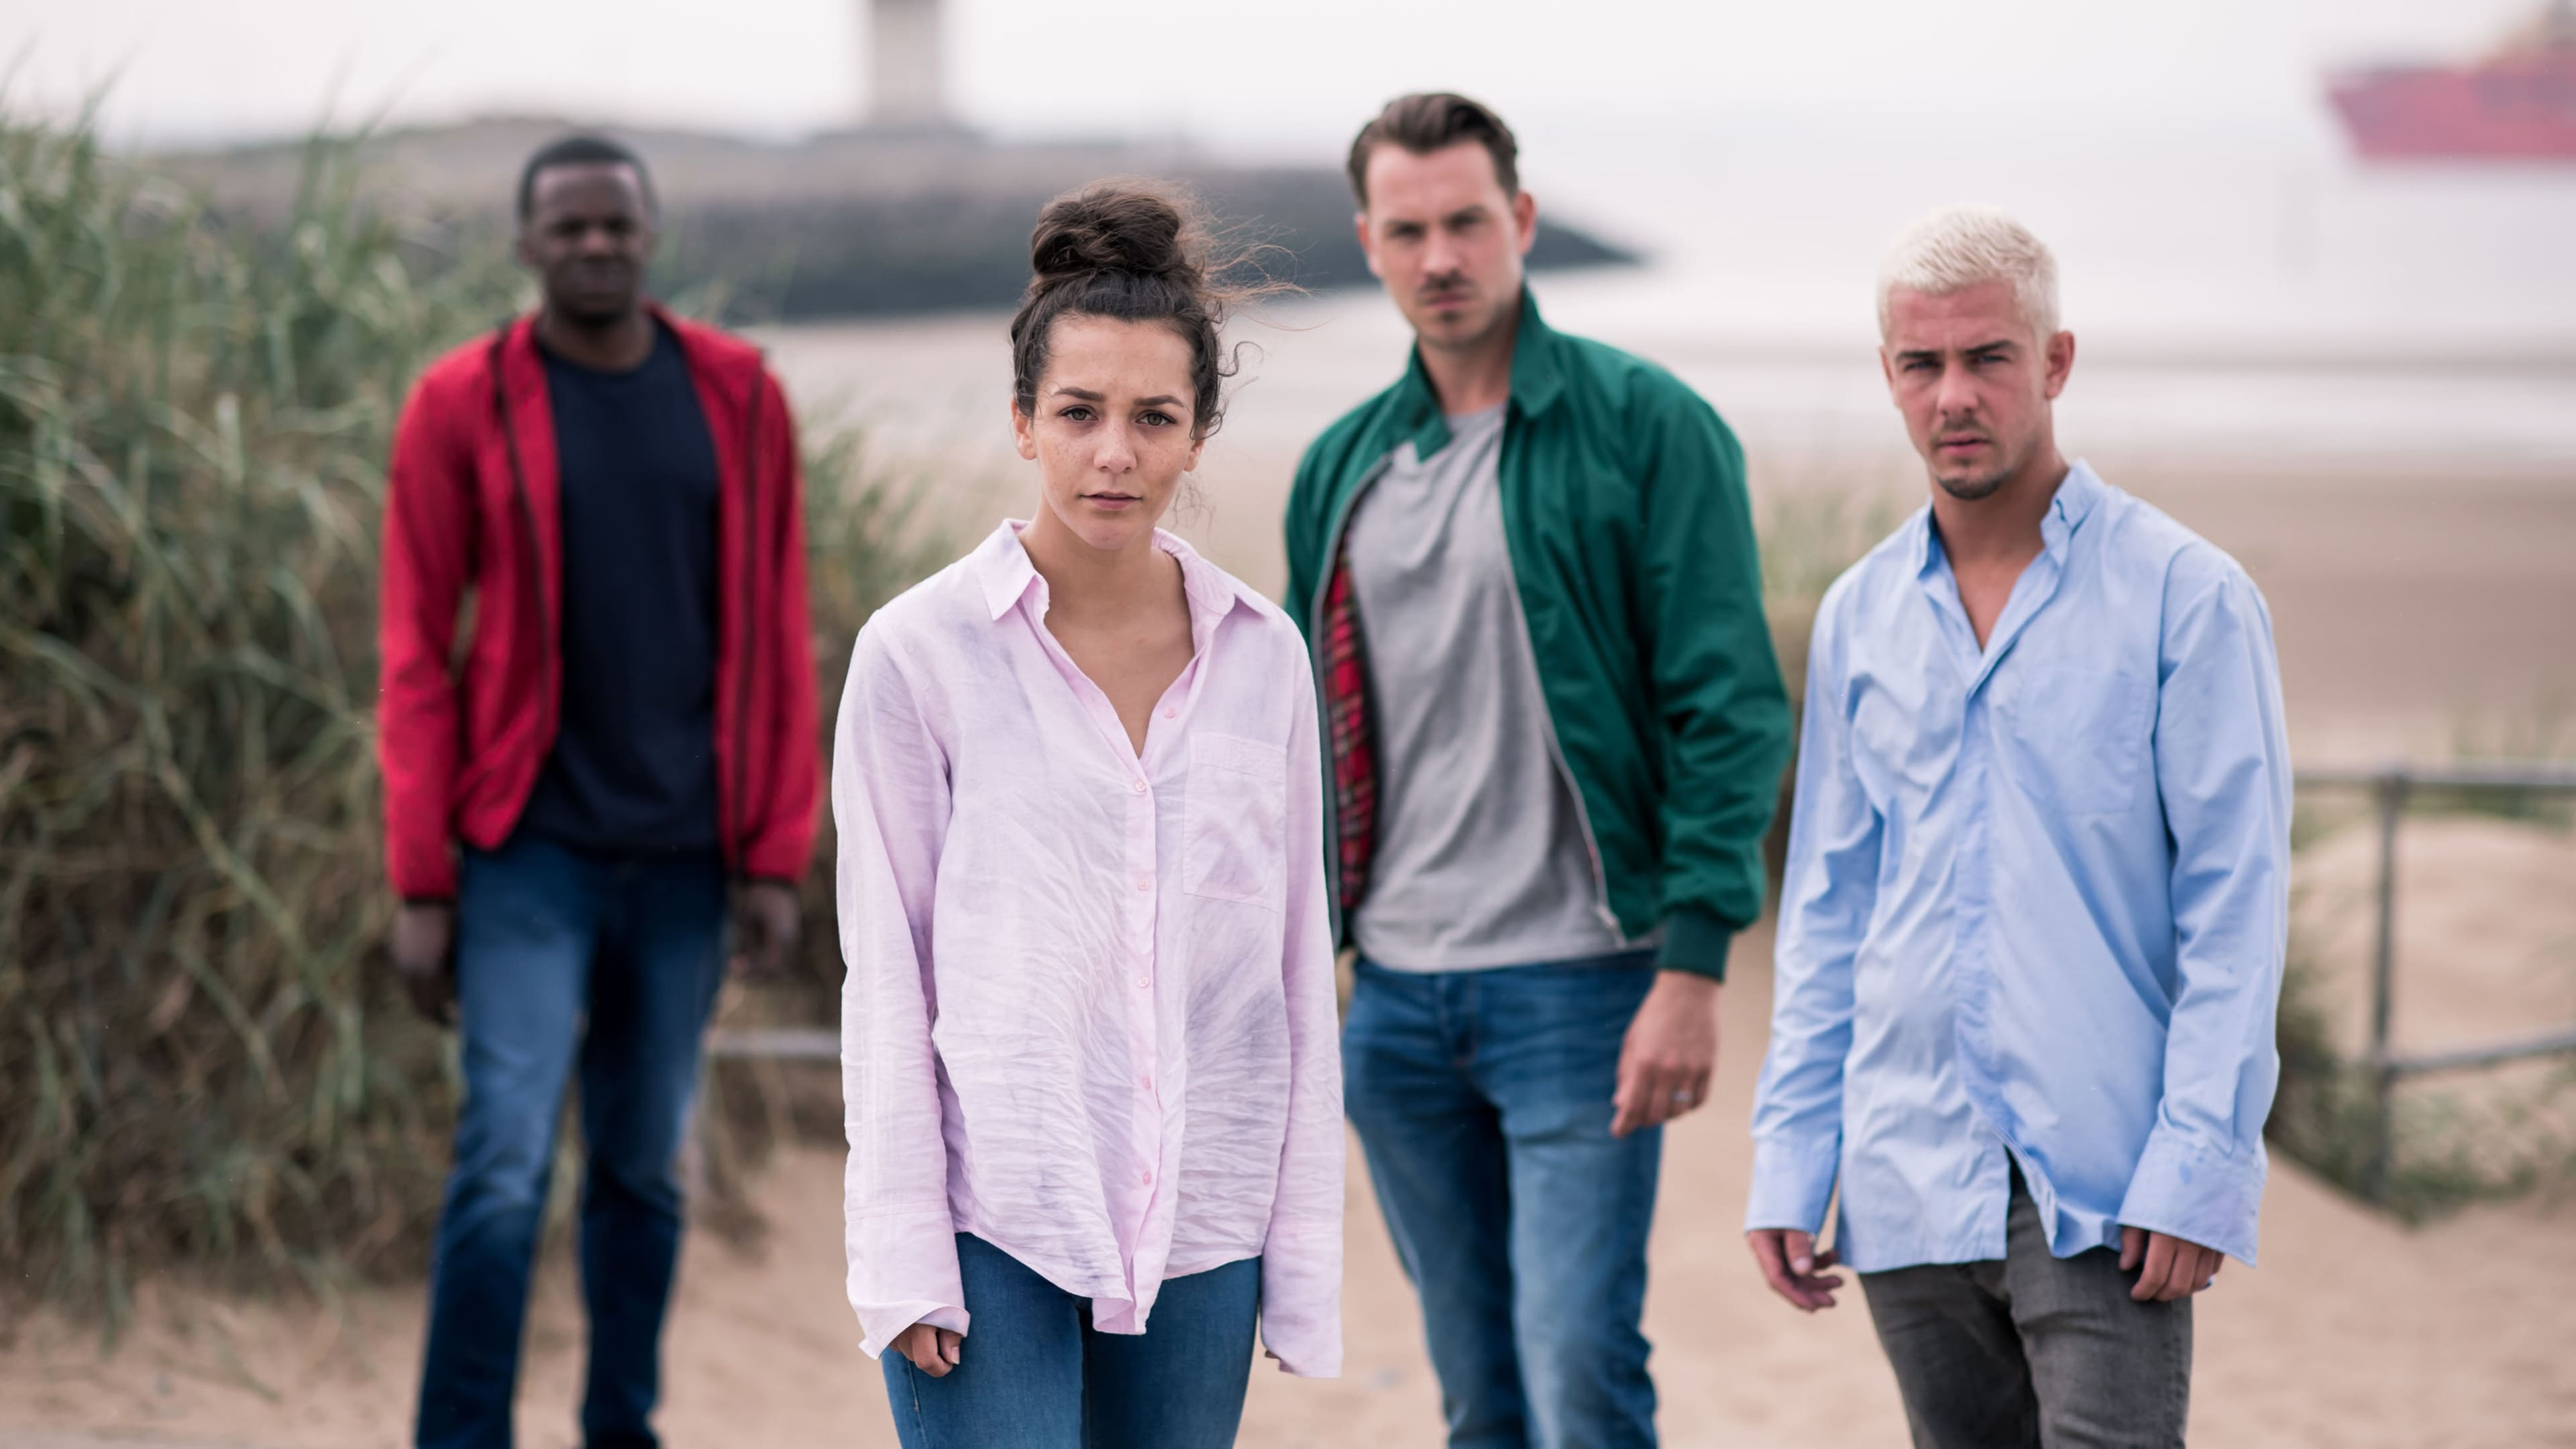 Hollyoaks - Season 22 Episode 156 : Shattered Dreams